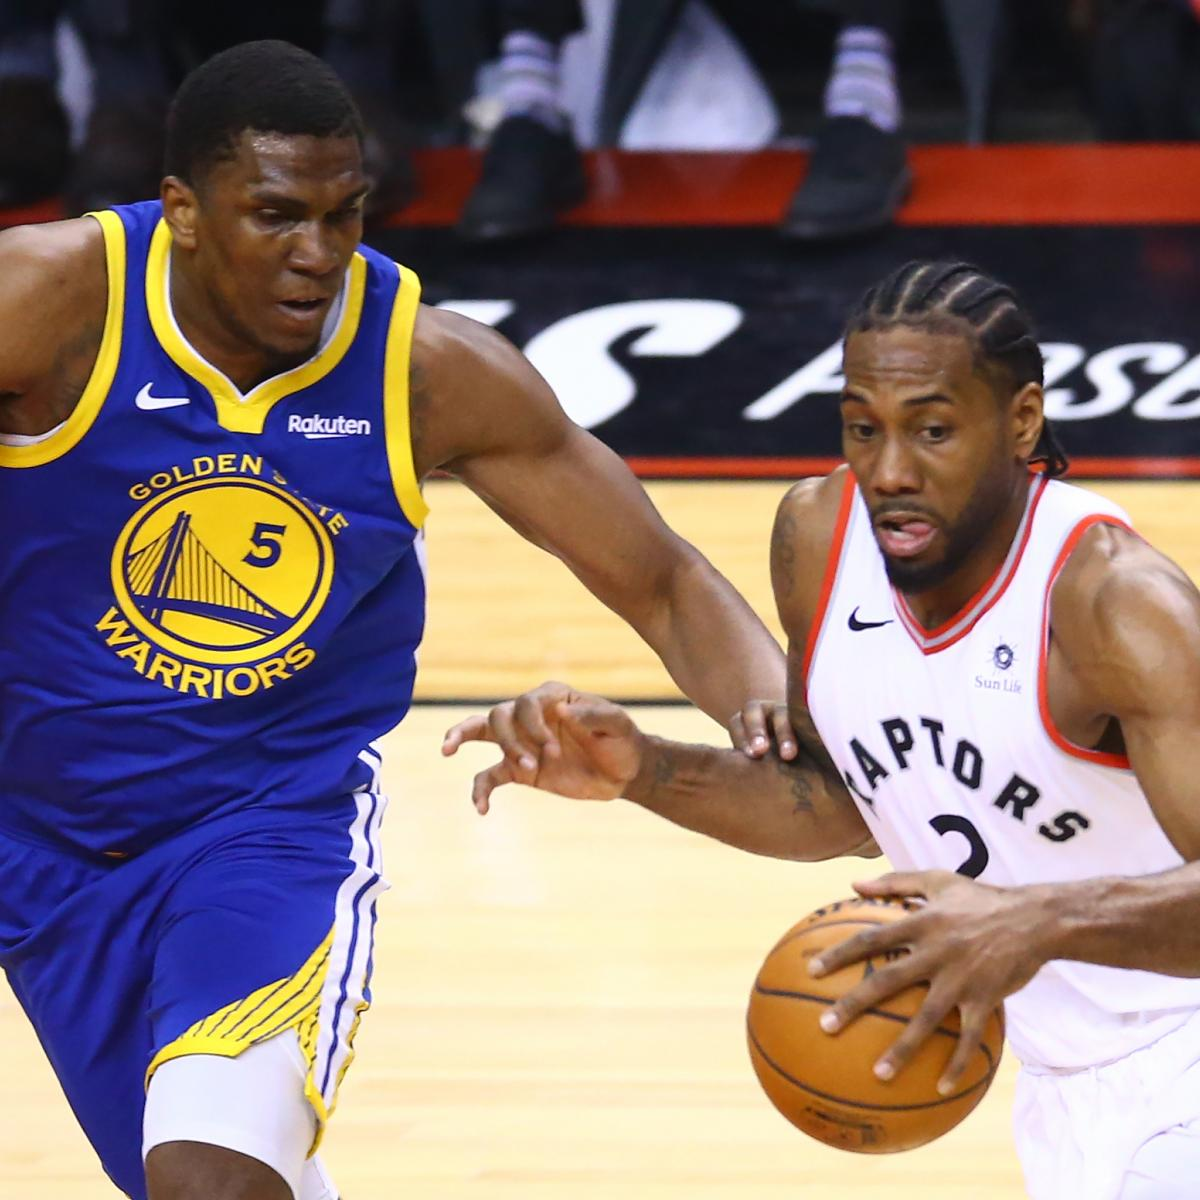 Warriors Come Out To Play Bleacher Report: Warriors' Kevon Looney Collarbone Injury Diagnosed As